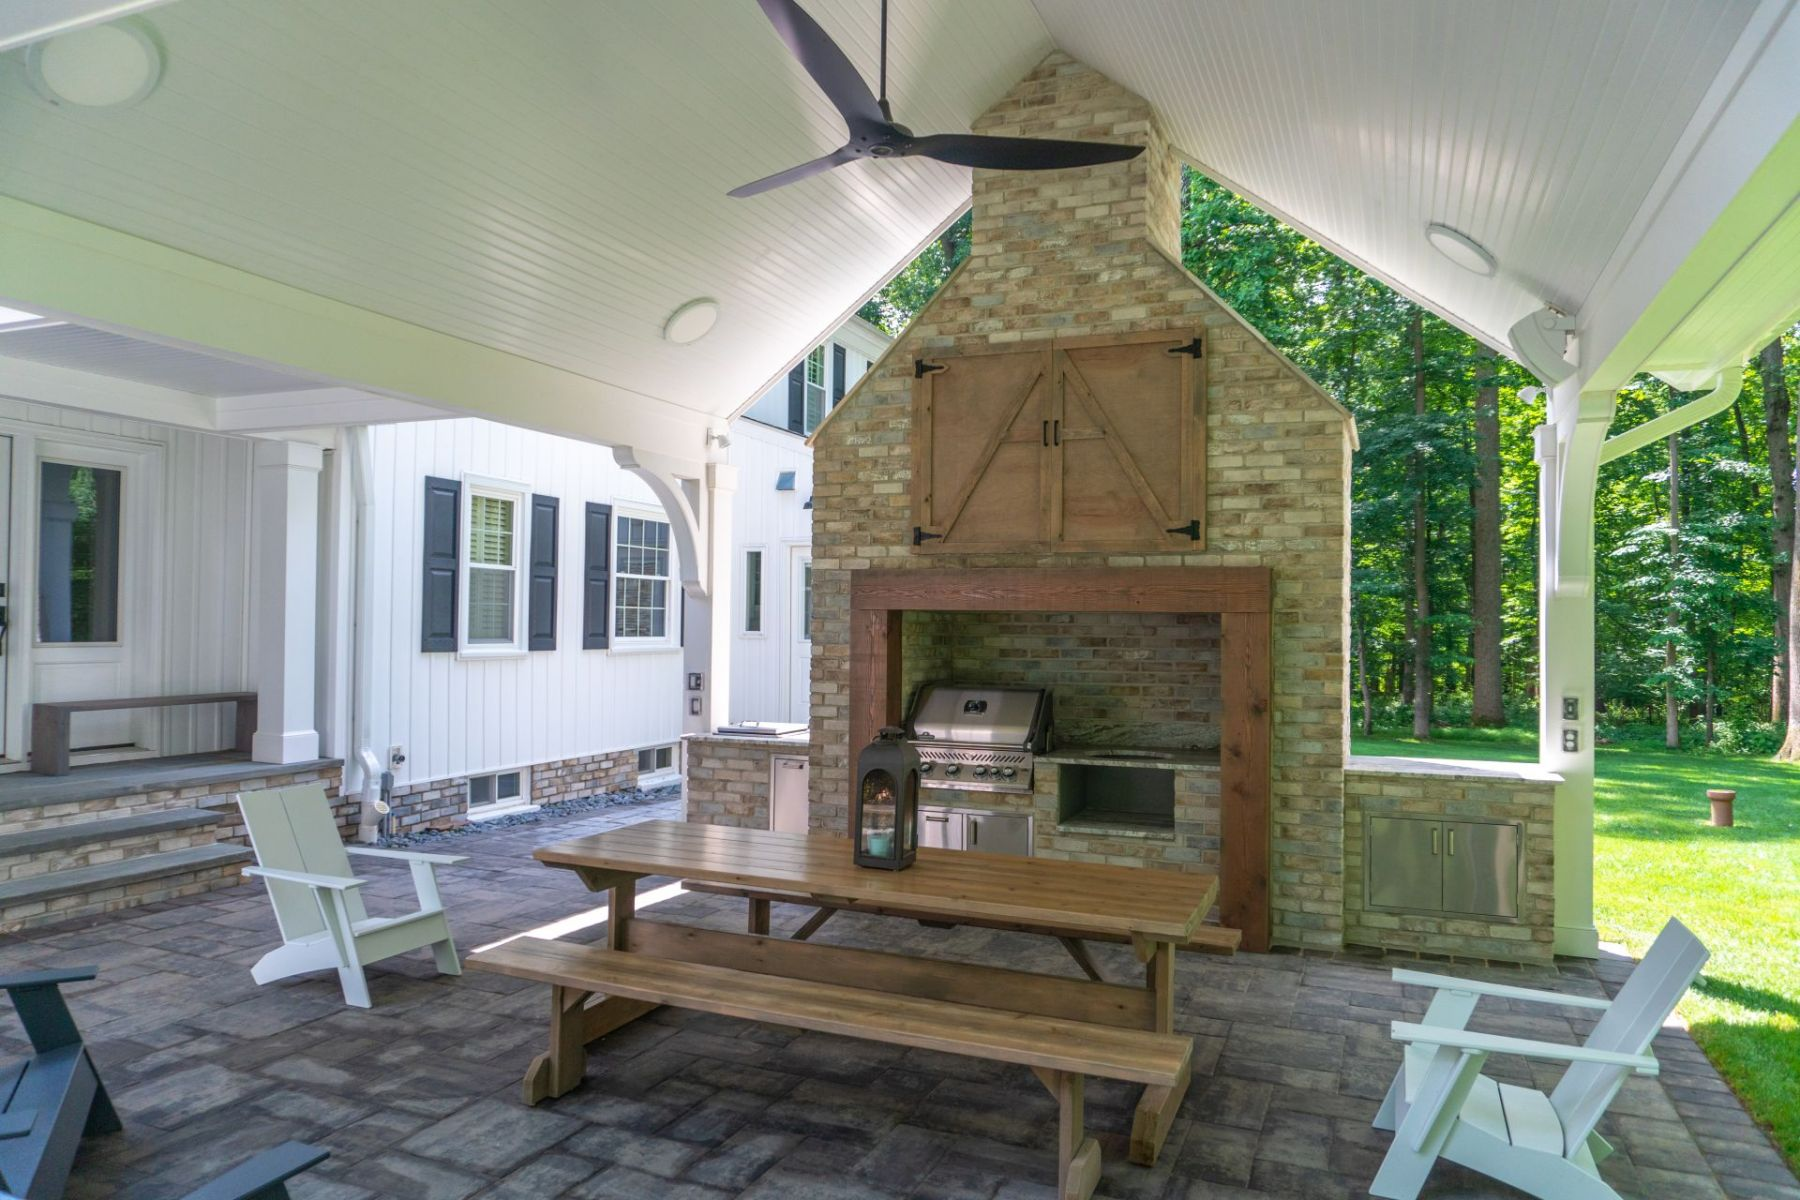 Covered outdoor kitchen and patio in Howard County, MD